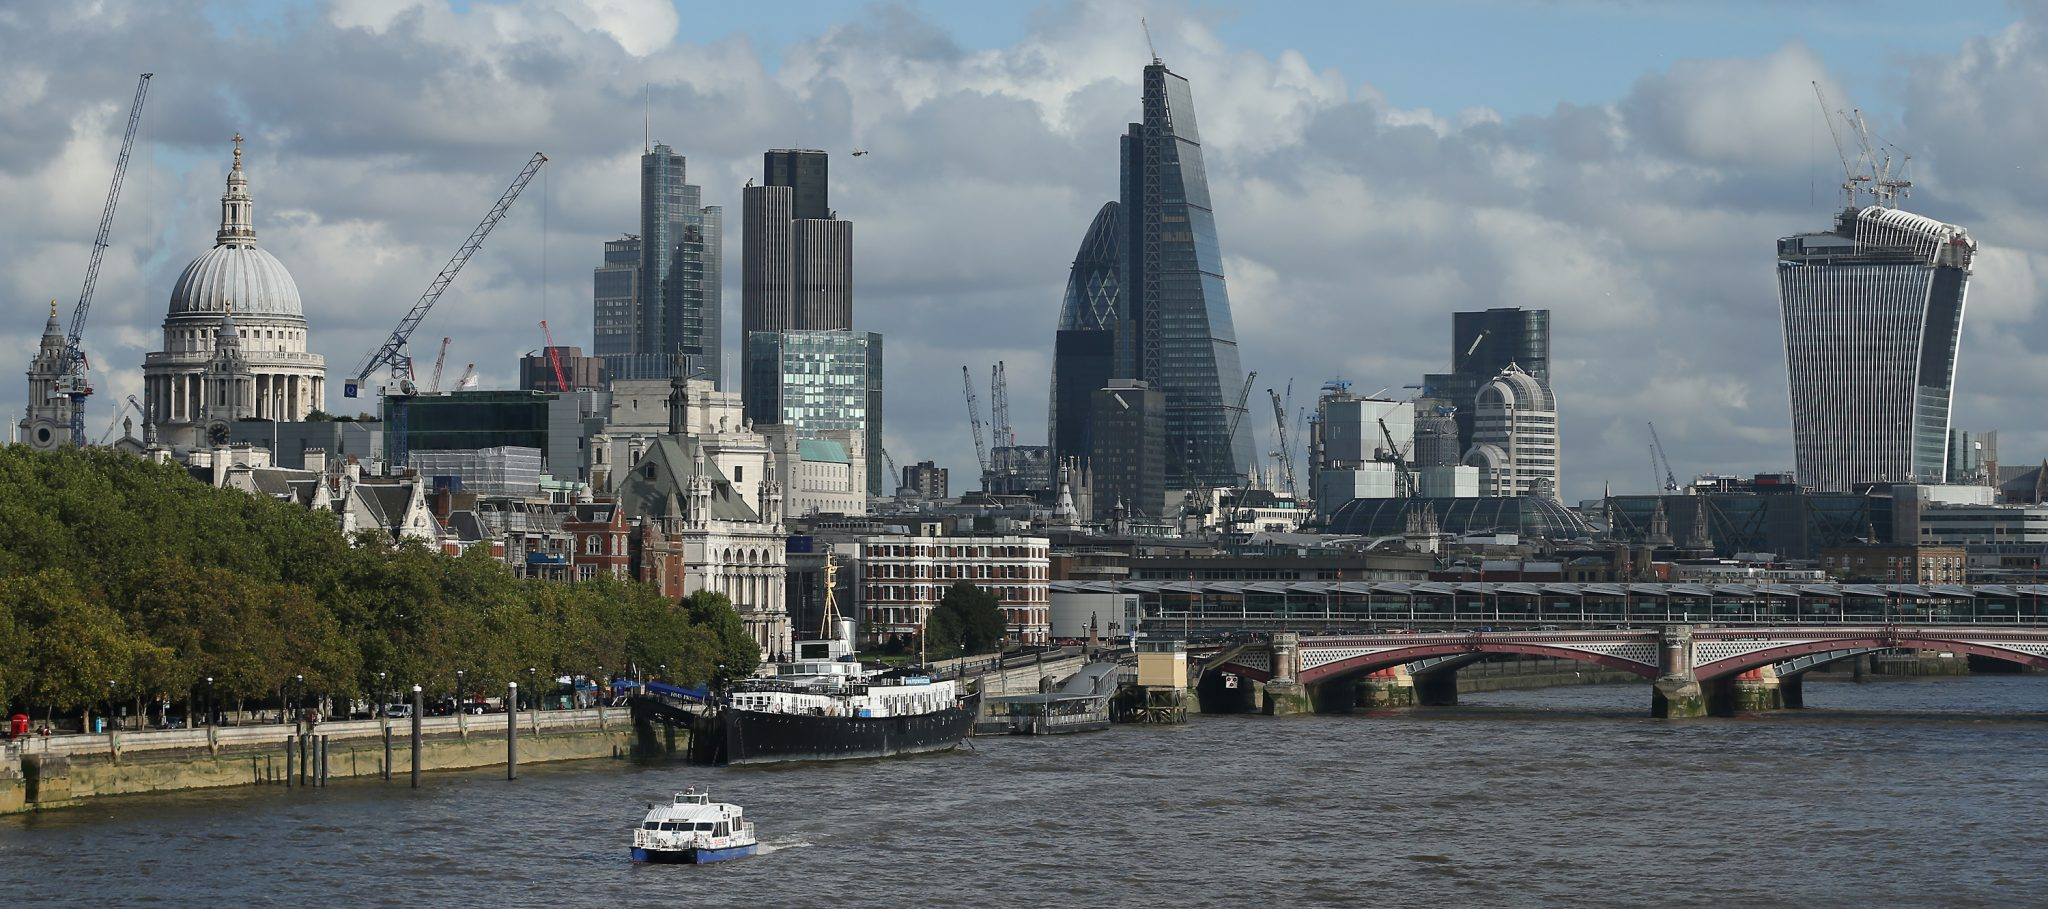 London calling: Why it's time to bring life back to our city's streets